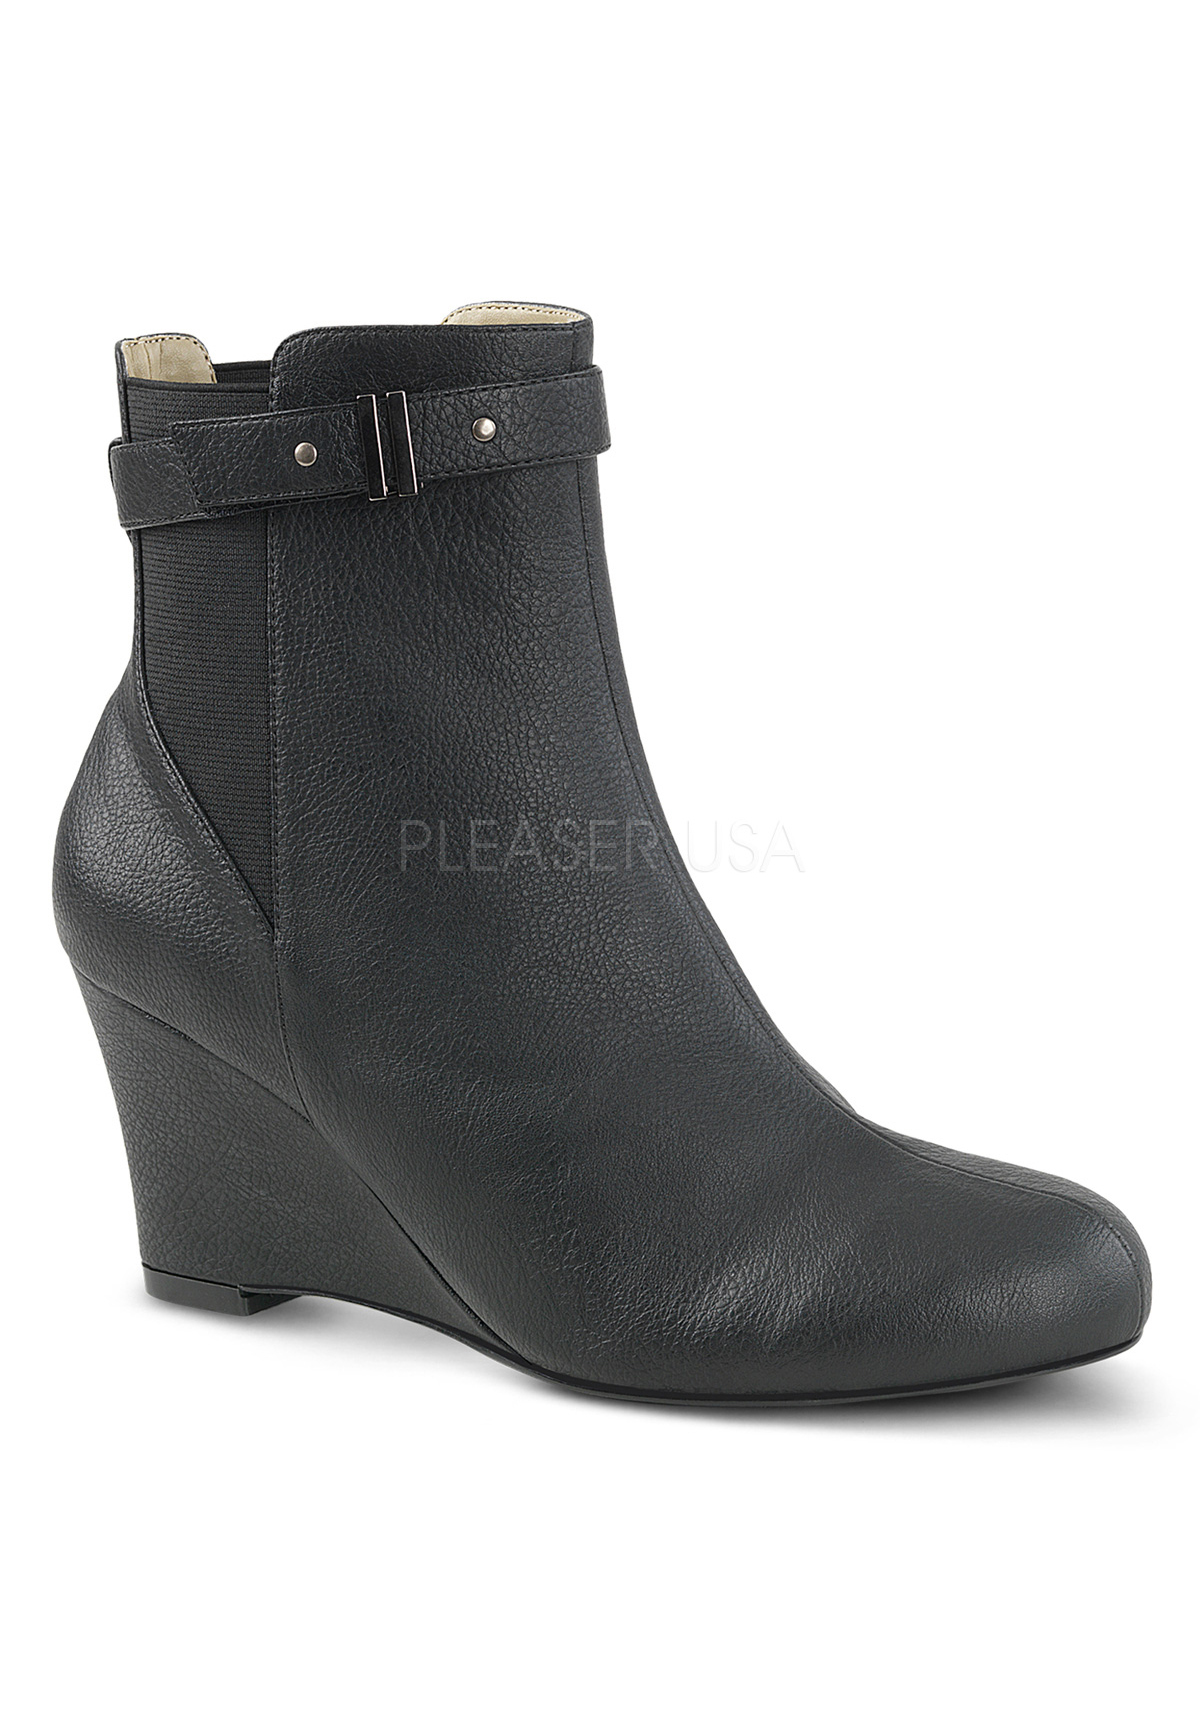 Pleaser KIMBERLY-102 3 Inch Heel Ankle Boot